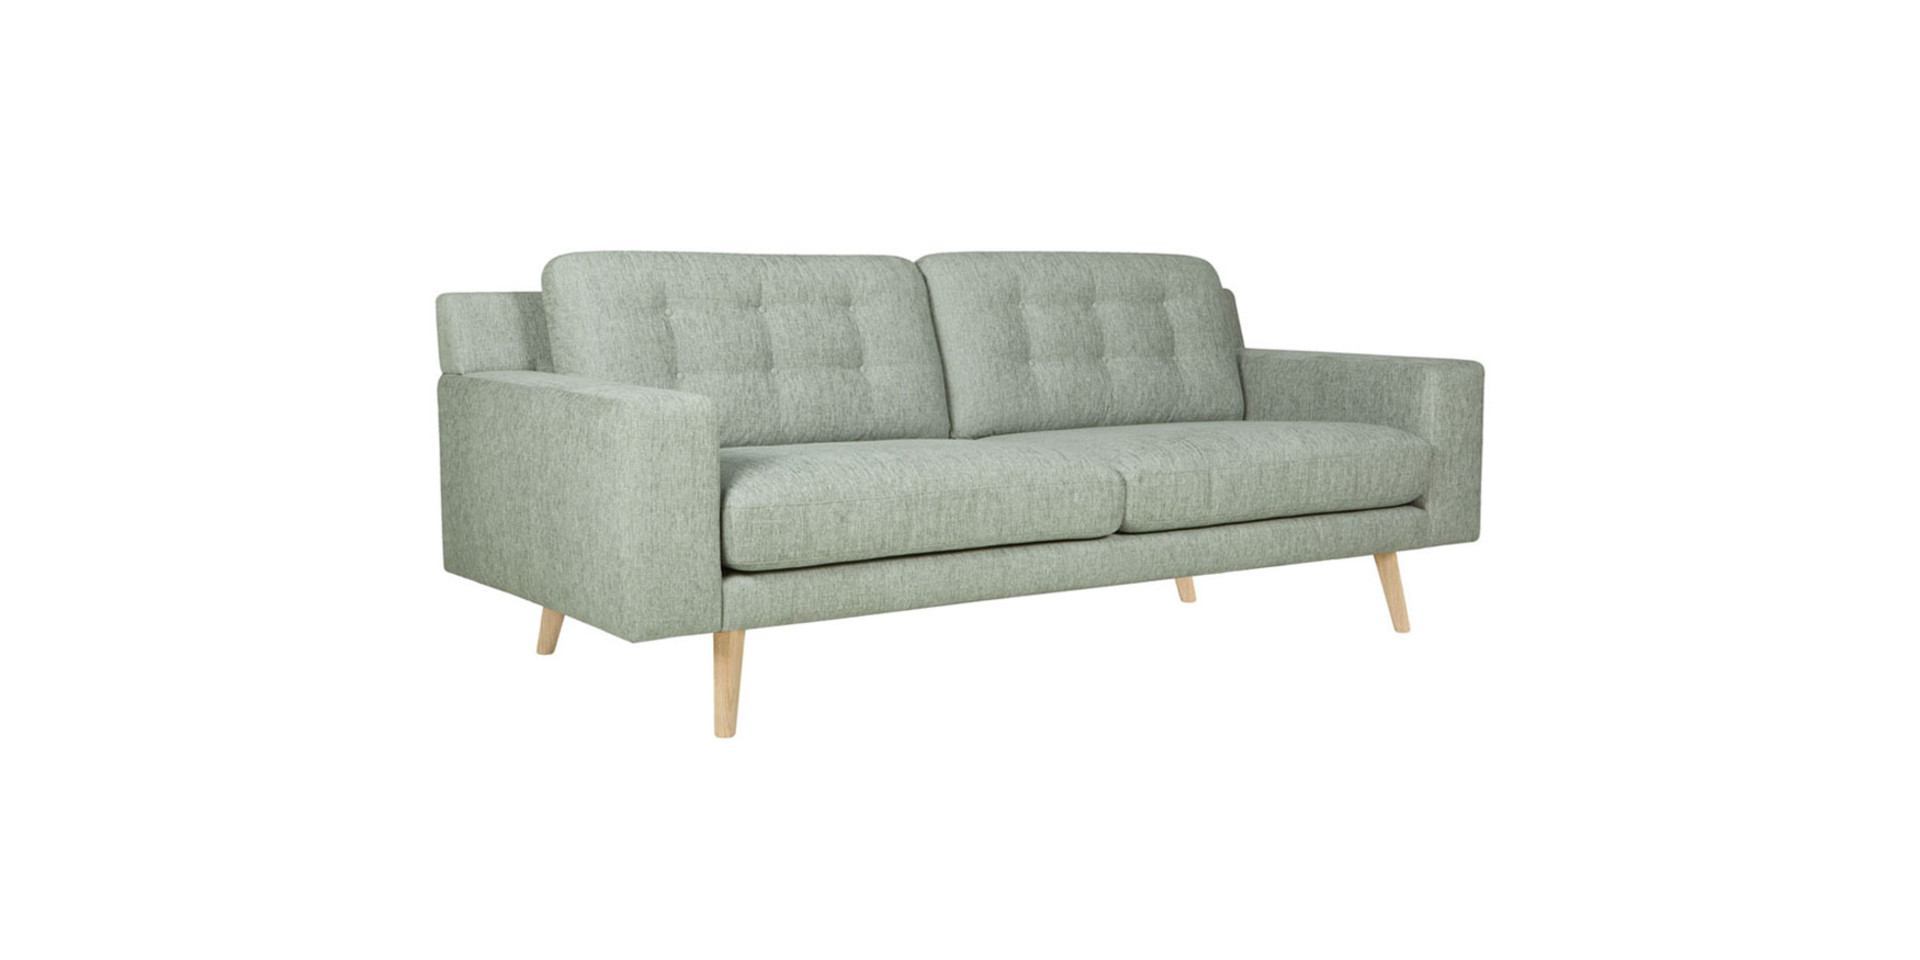 sits-axel-canape-3seater_riscorunner9_blue_grey_2_0_0